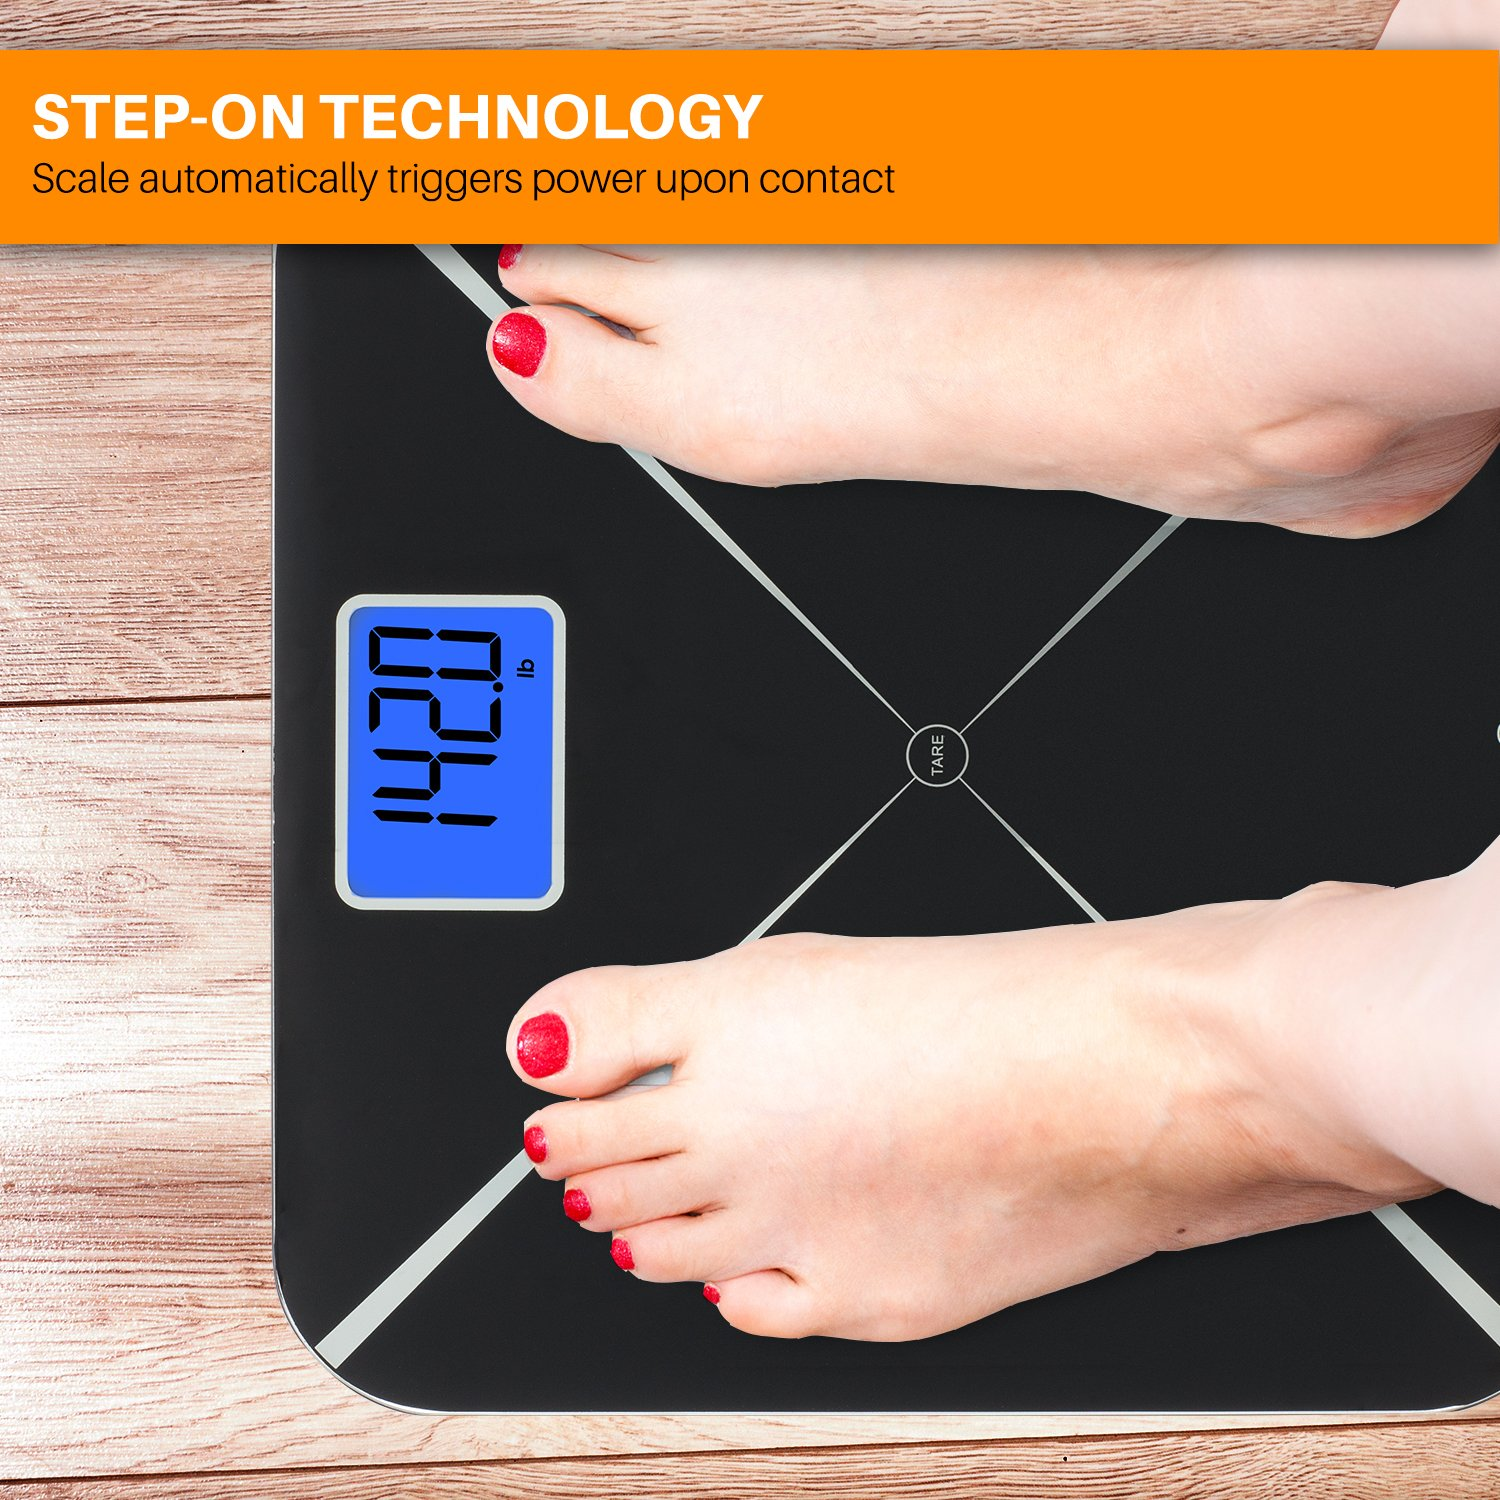 Smart Weigh Digital Body Weight Scale with Baby or Pet Tare Weighing Technology, Bathroom Scale with Large LCD Display and Tempered Glass Platform, 440lbs/200kg Capacity (Black) by Smart Weigh (Image #5)